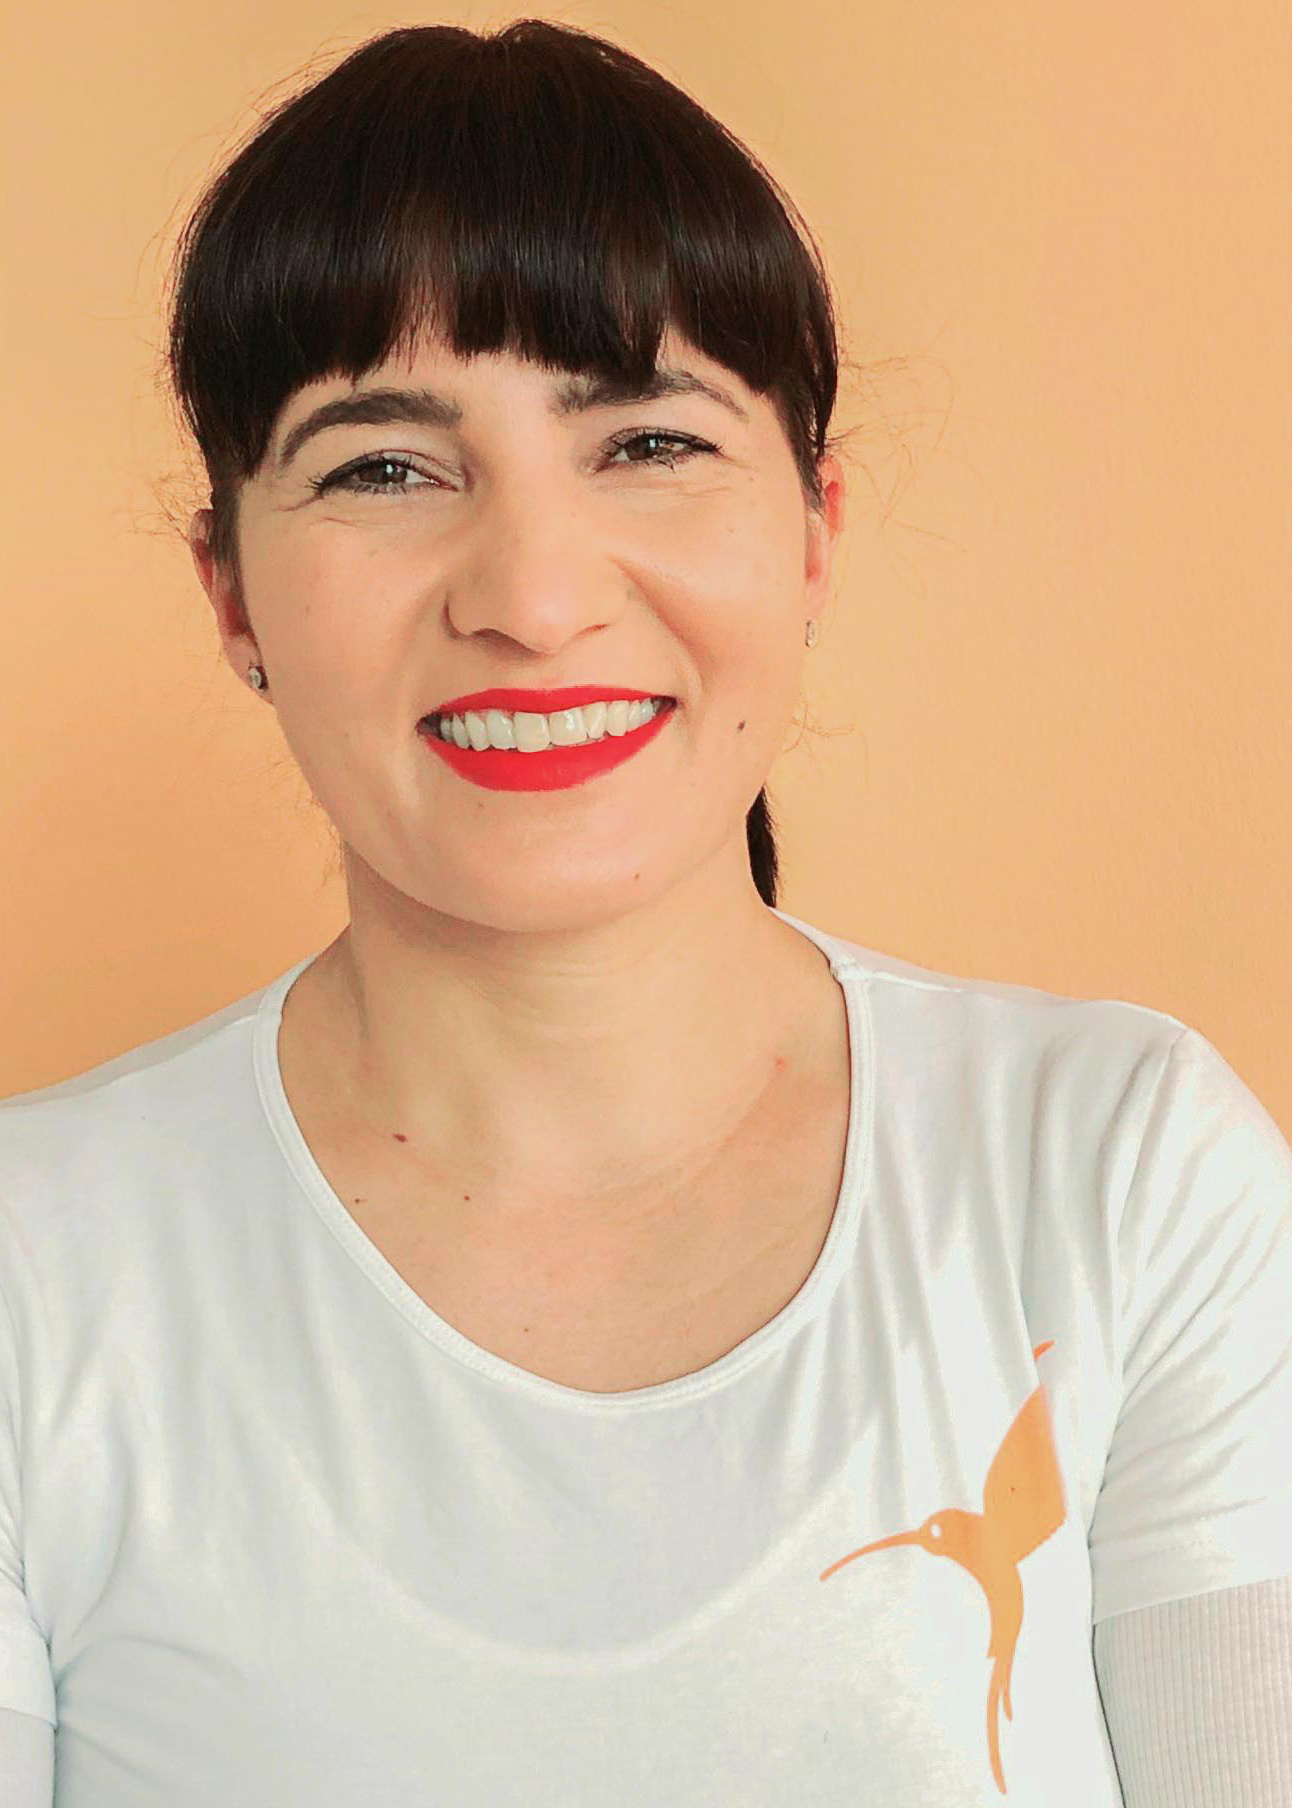 Roza Polat | Certified cosmetician and massage therapist (starting December 1st)